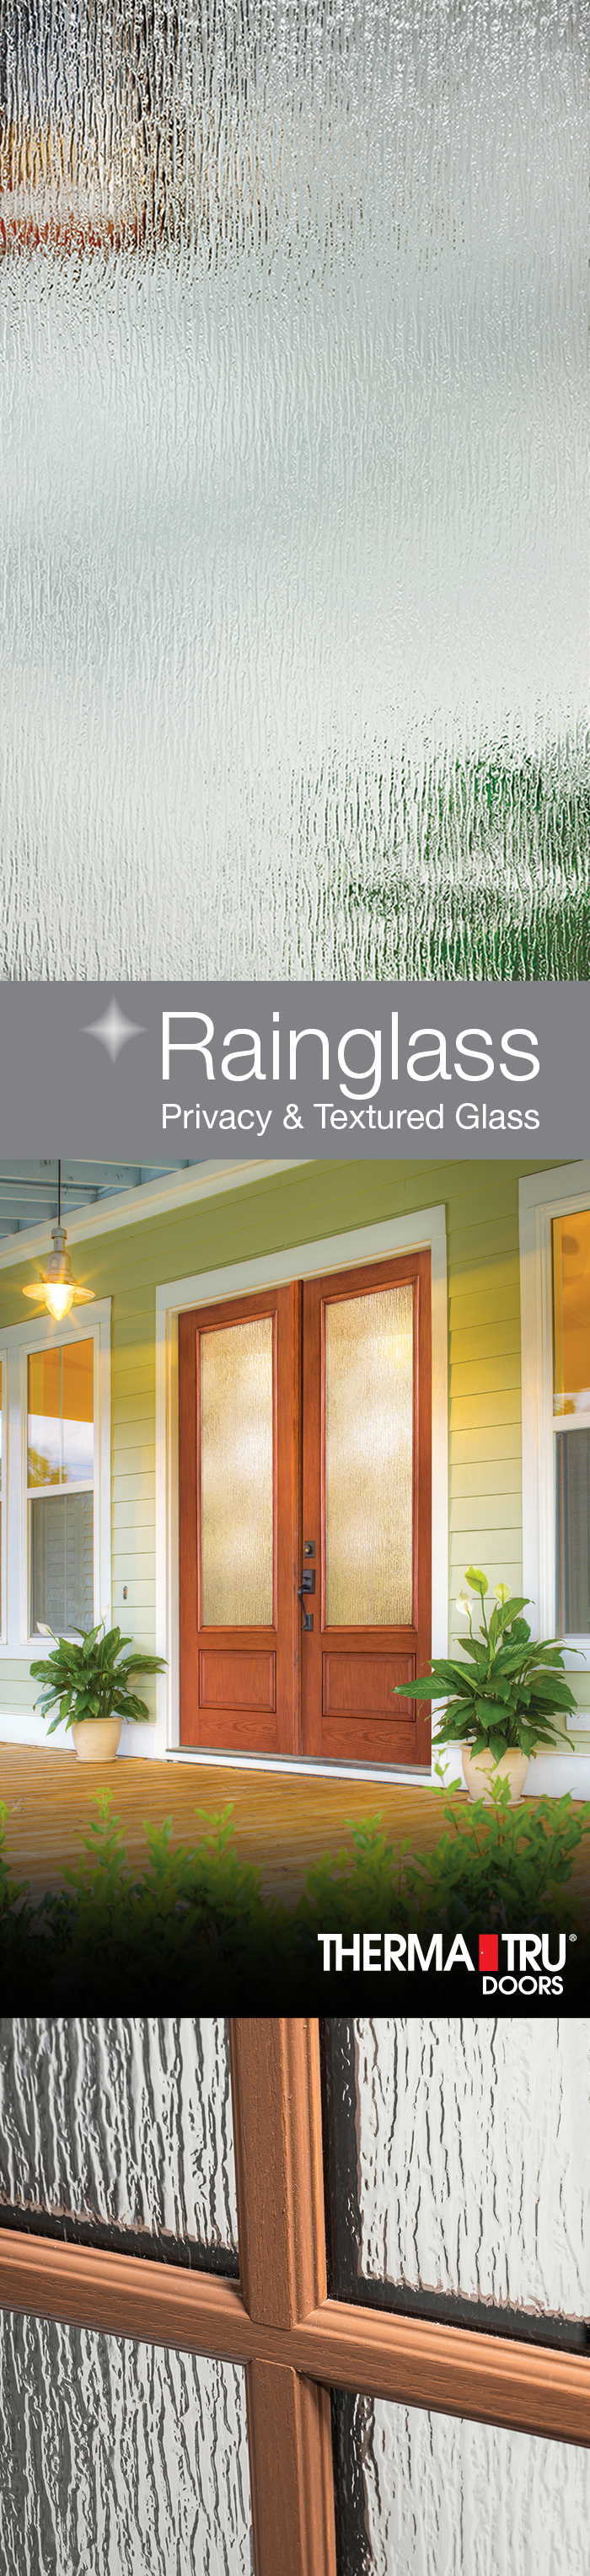 An Elegantly Fashioned Glass Rainglass Features Ripples Of Cascading Water House Front Door Farmhouse Style Glass Texture